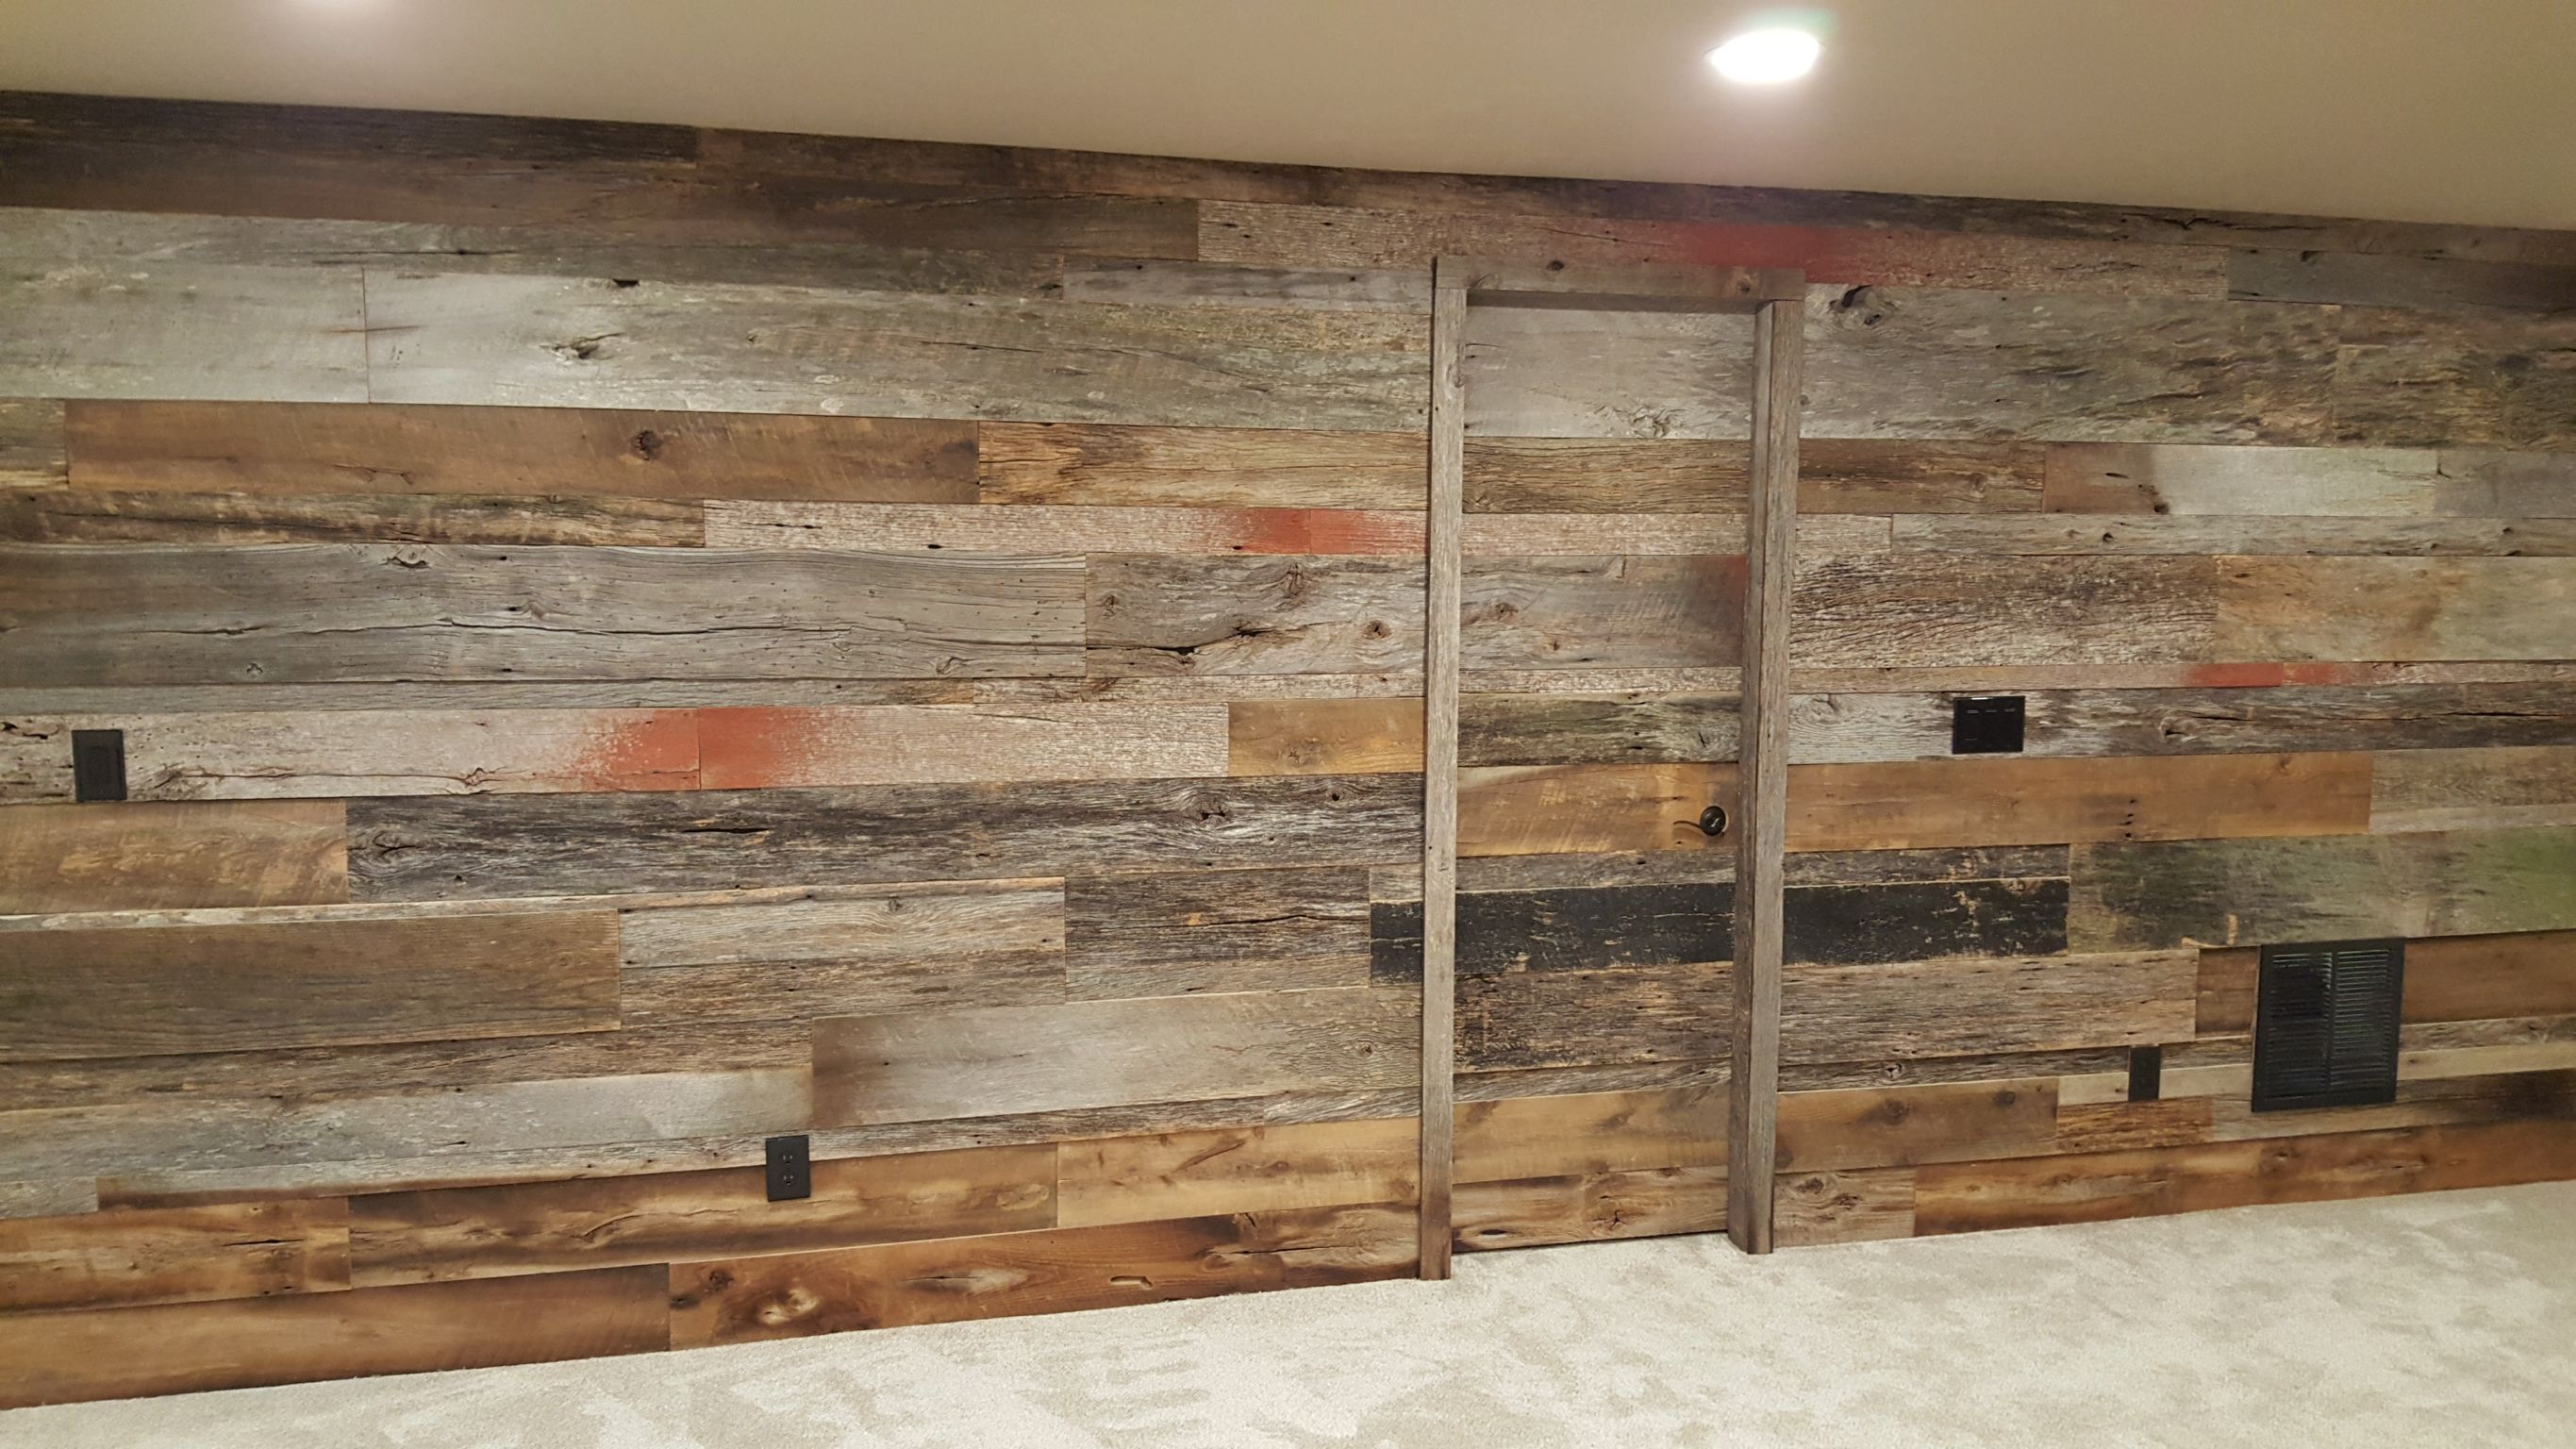 Thank You To Peter From Bella Basements For Sharing Photos Of A Beautiful Basement Install They Did In Littl How To Antique Wood Hand Hewn Beams Reclaimed Wood